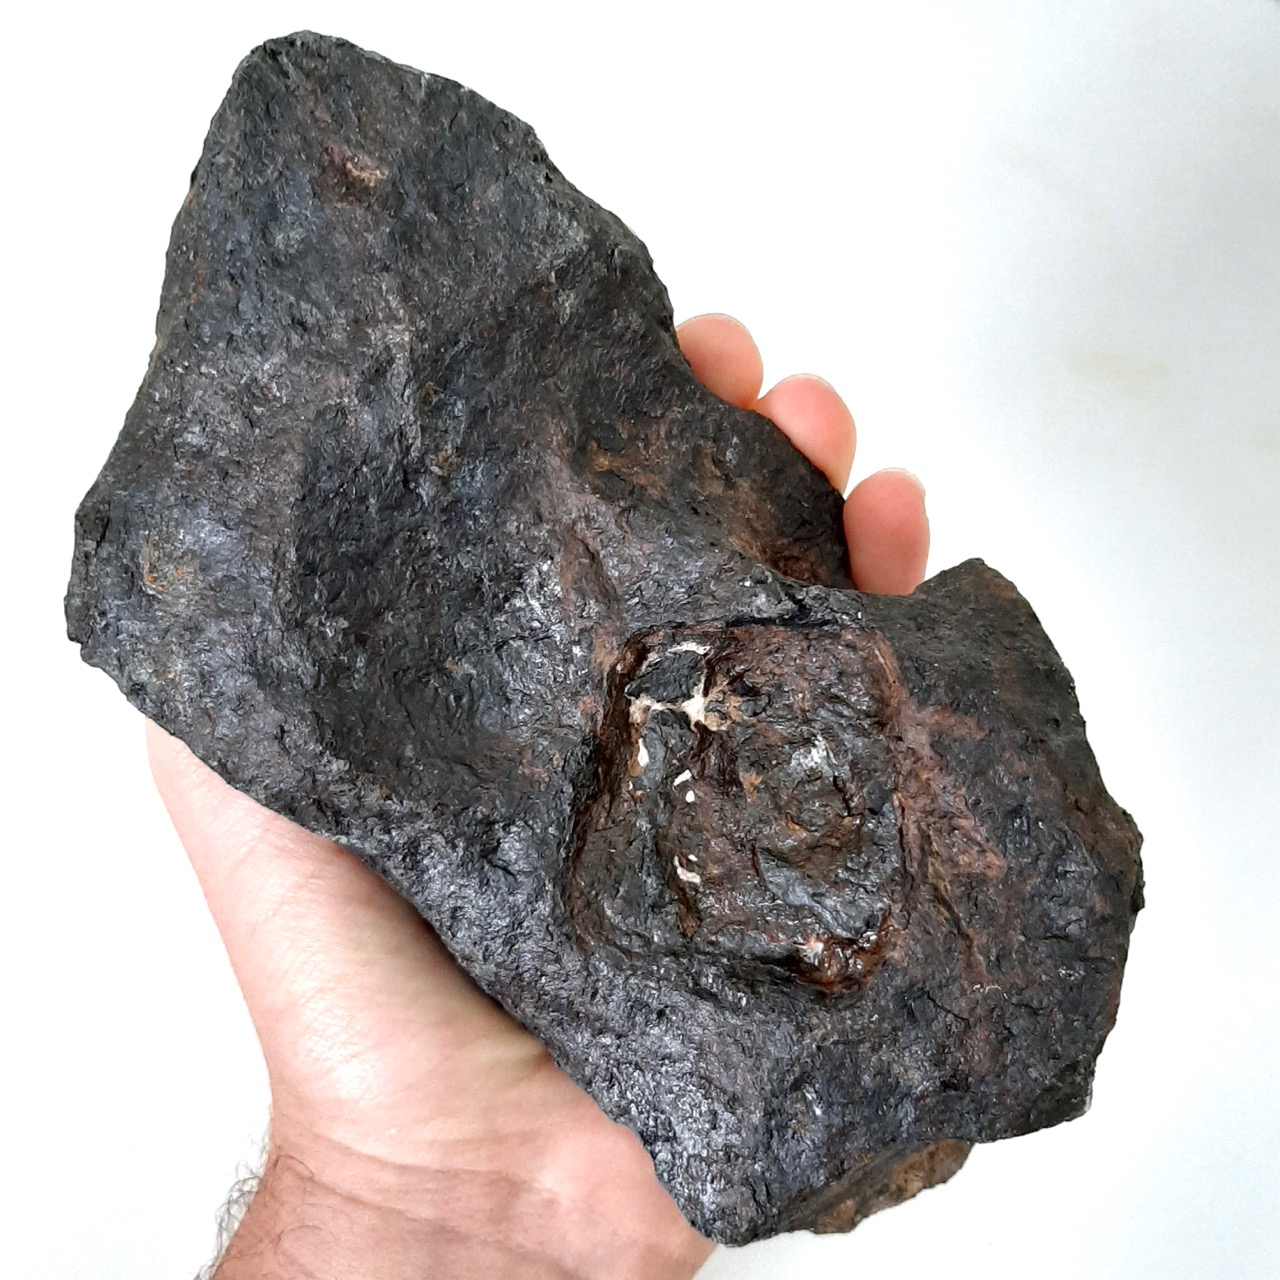 Canyon Diablo meteorite. Big iron with graphite inclusion.